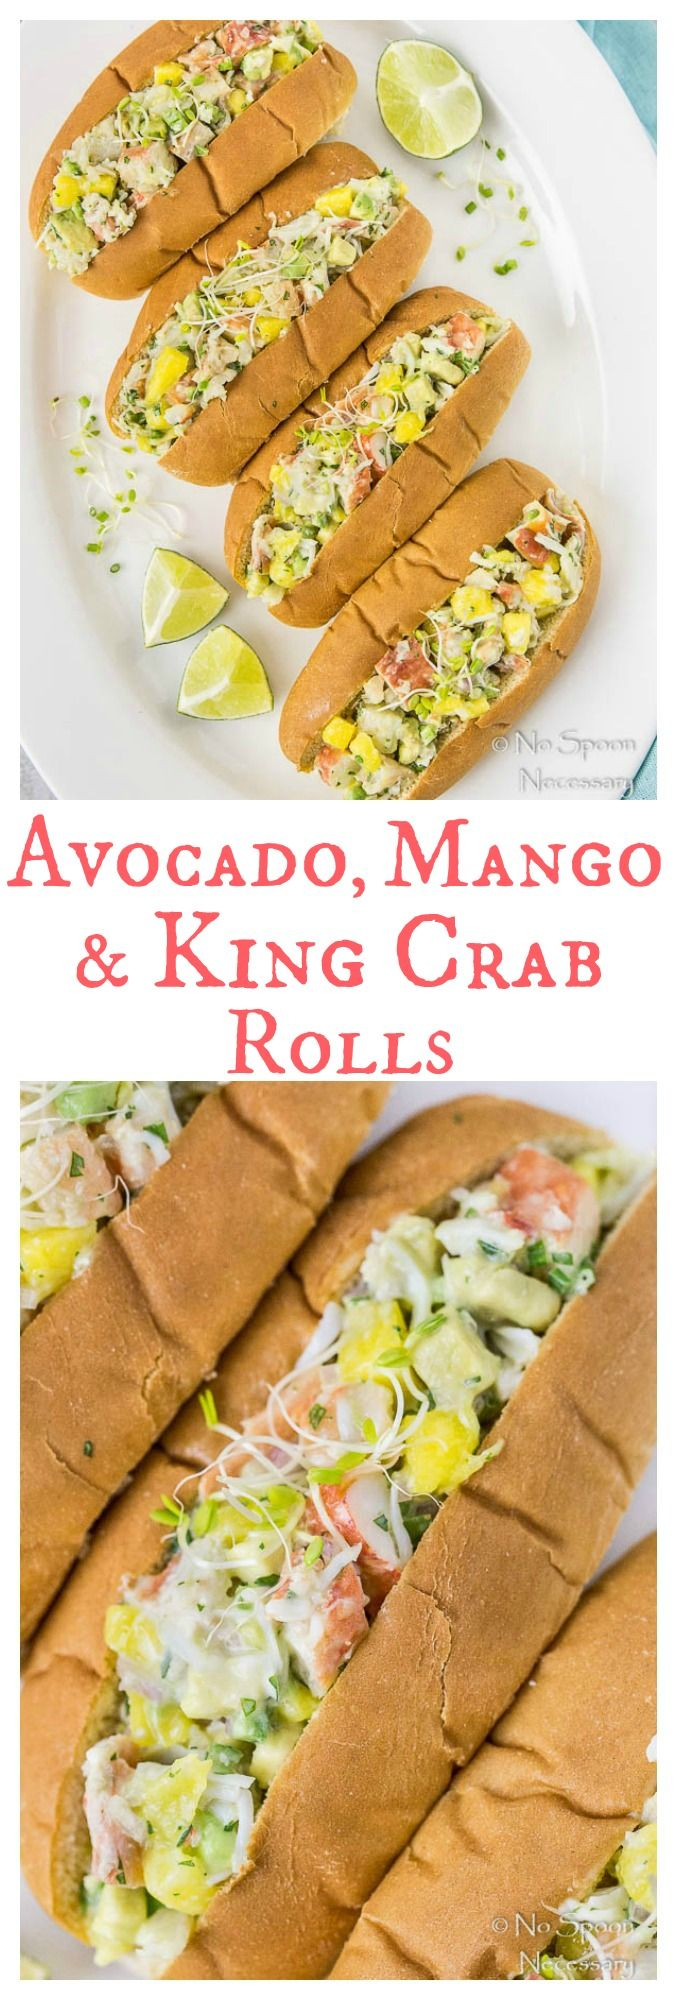 Avocado, Mango & King Crab Rolls - Ditch the hot dog and opt for these fresh and fabulous rolls instead!